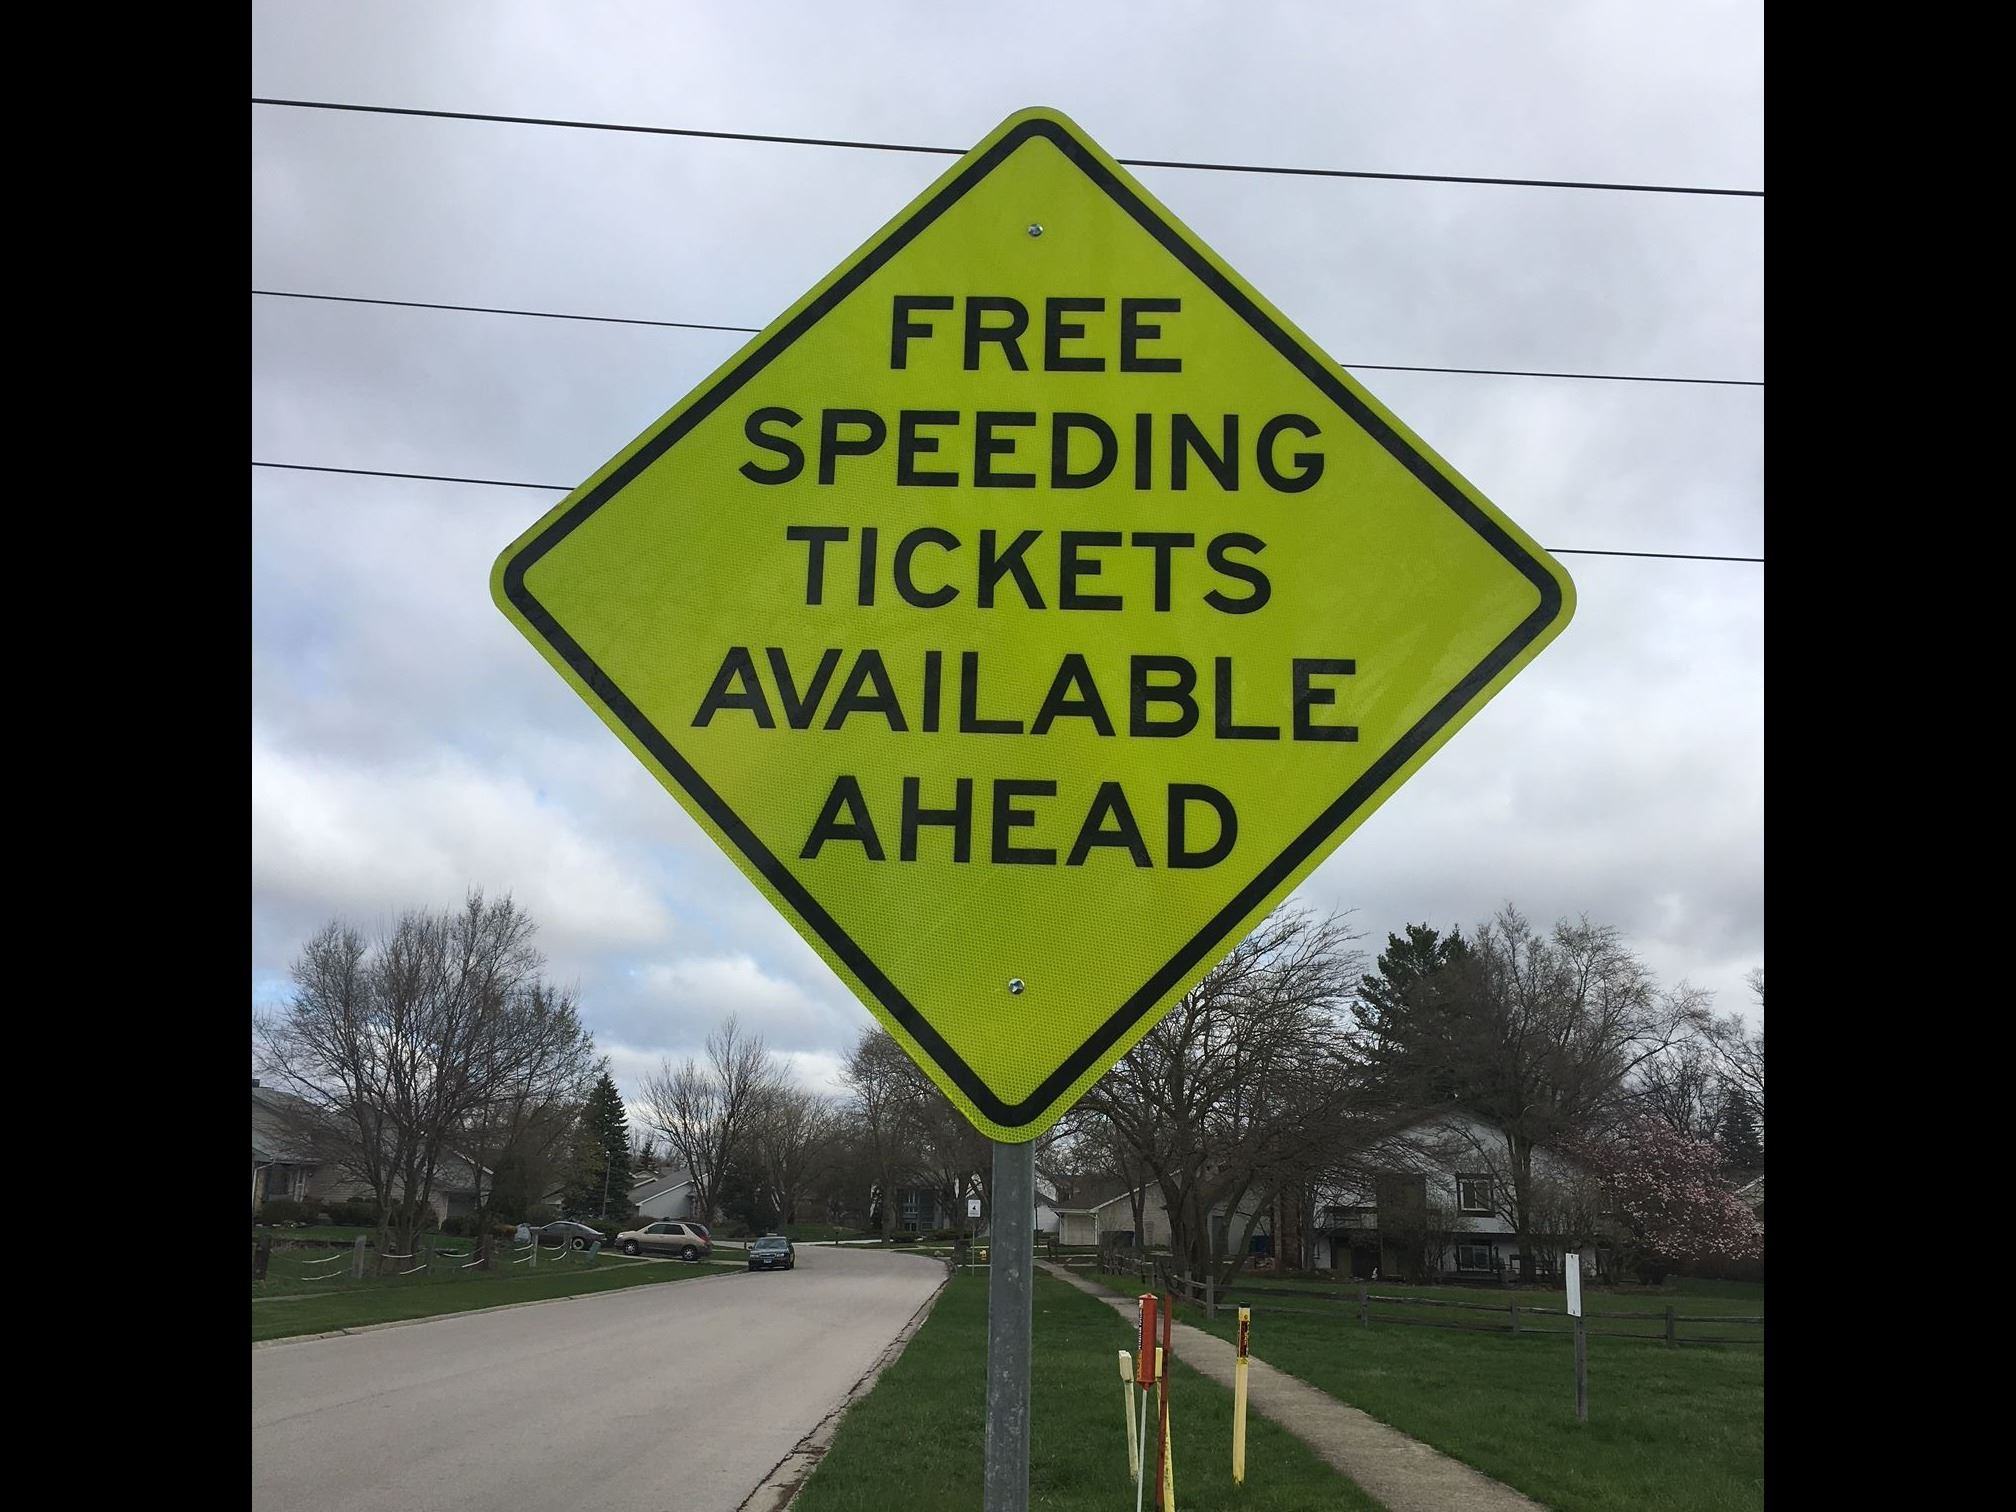 Free_Speeding_Ticket_Sign_IMG_0407